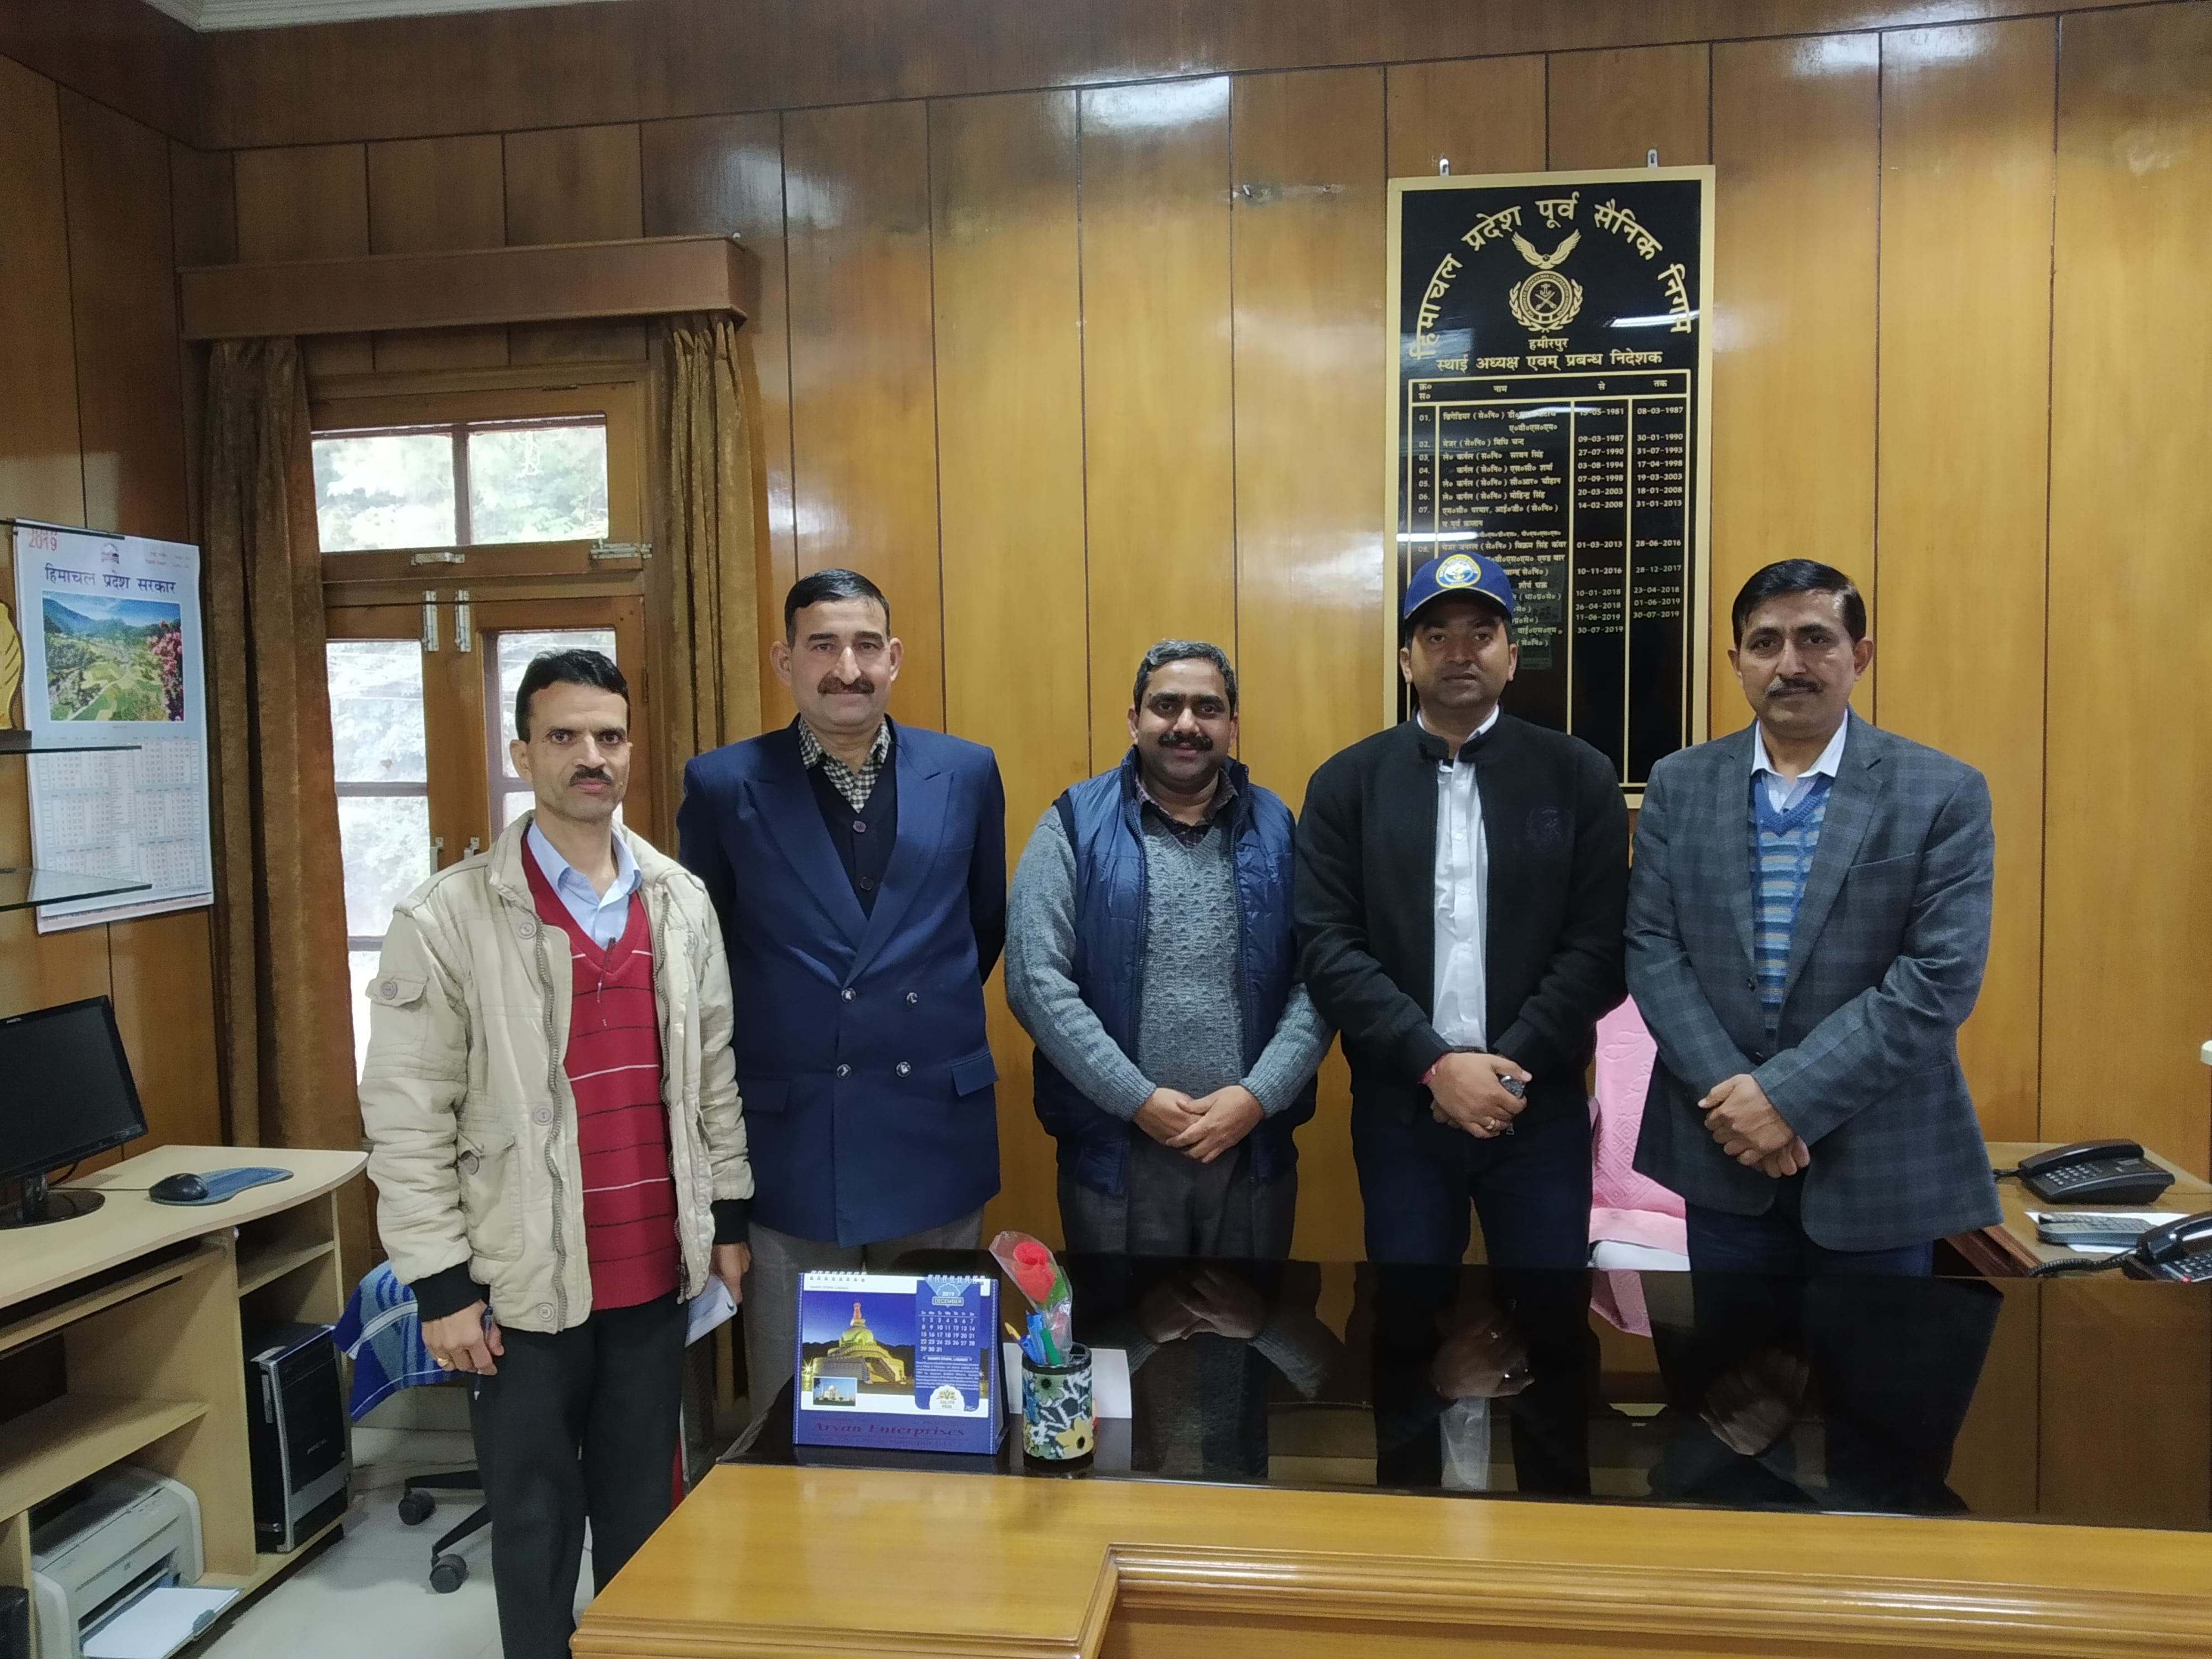 Sh. Rakesh Kumar Prajapati, IAS Deputy Commissioner Kangra (HP) visited Corporation Office regarding Outsource of Ex-Servicemen for Security Services